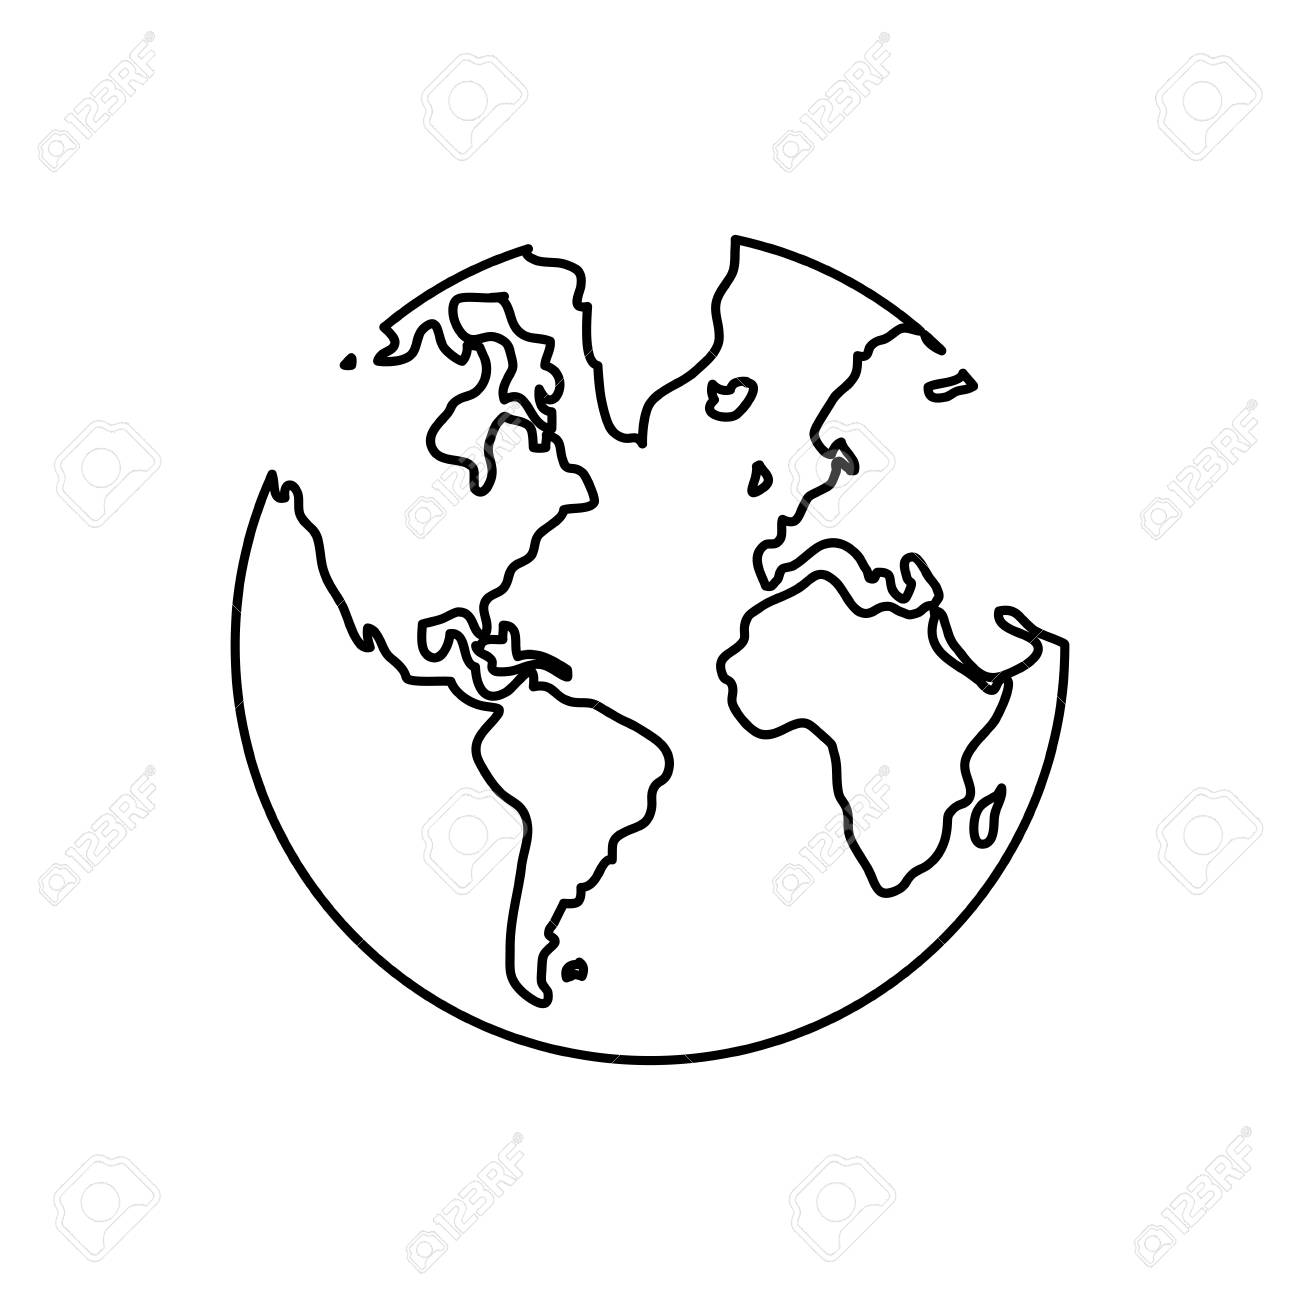 1300x1300 Simple Black Line Earth Globe With Water Land Distinction Vector